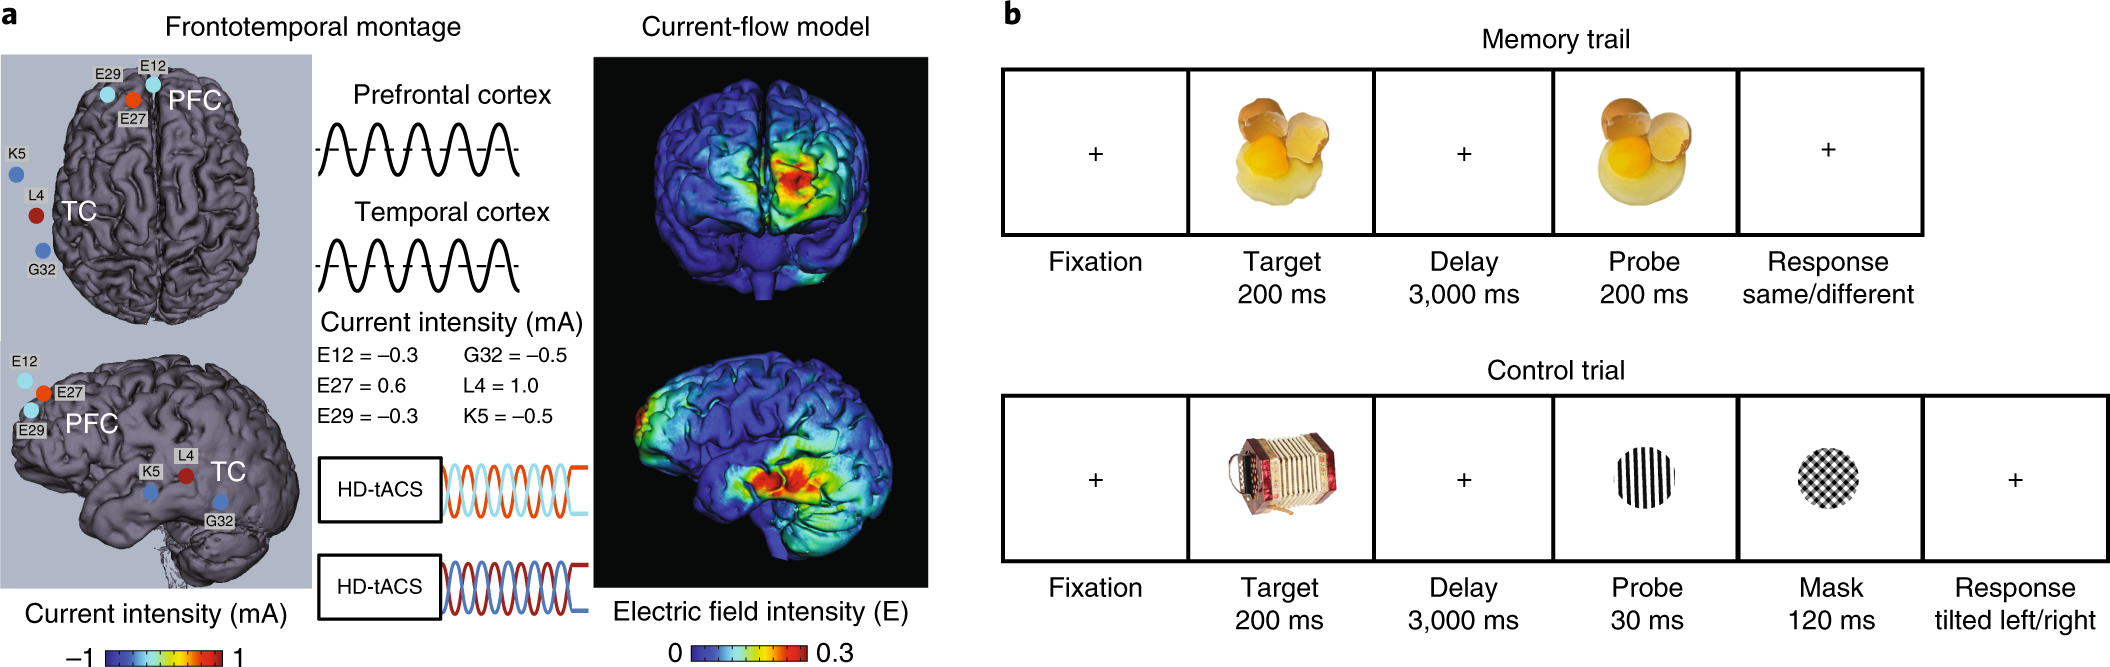 Working memory revived in older adults by synchronizing